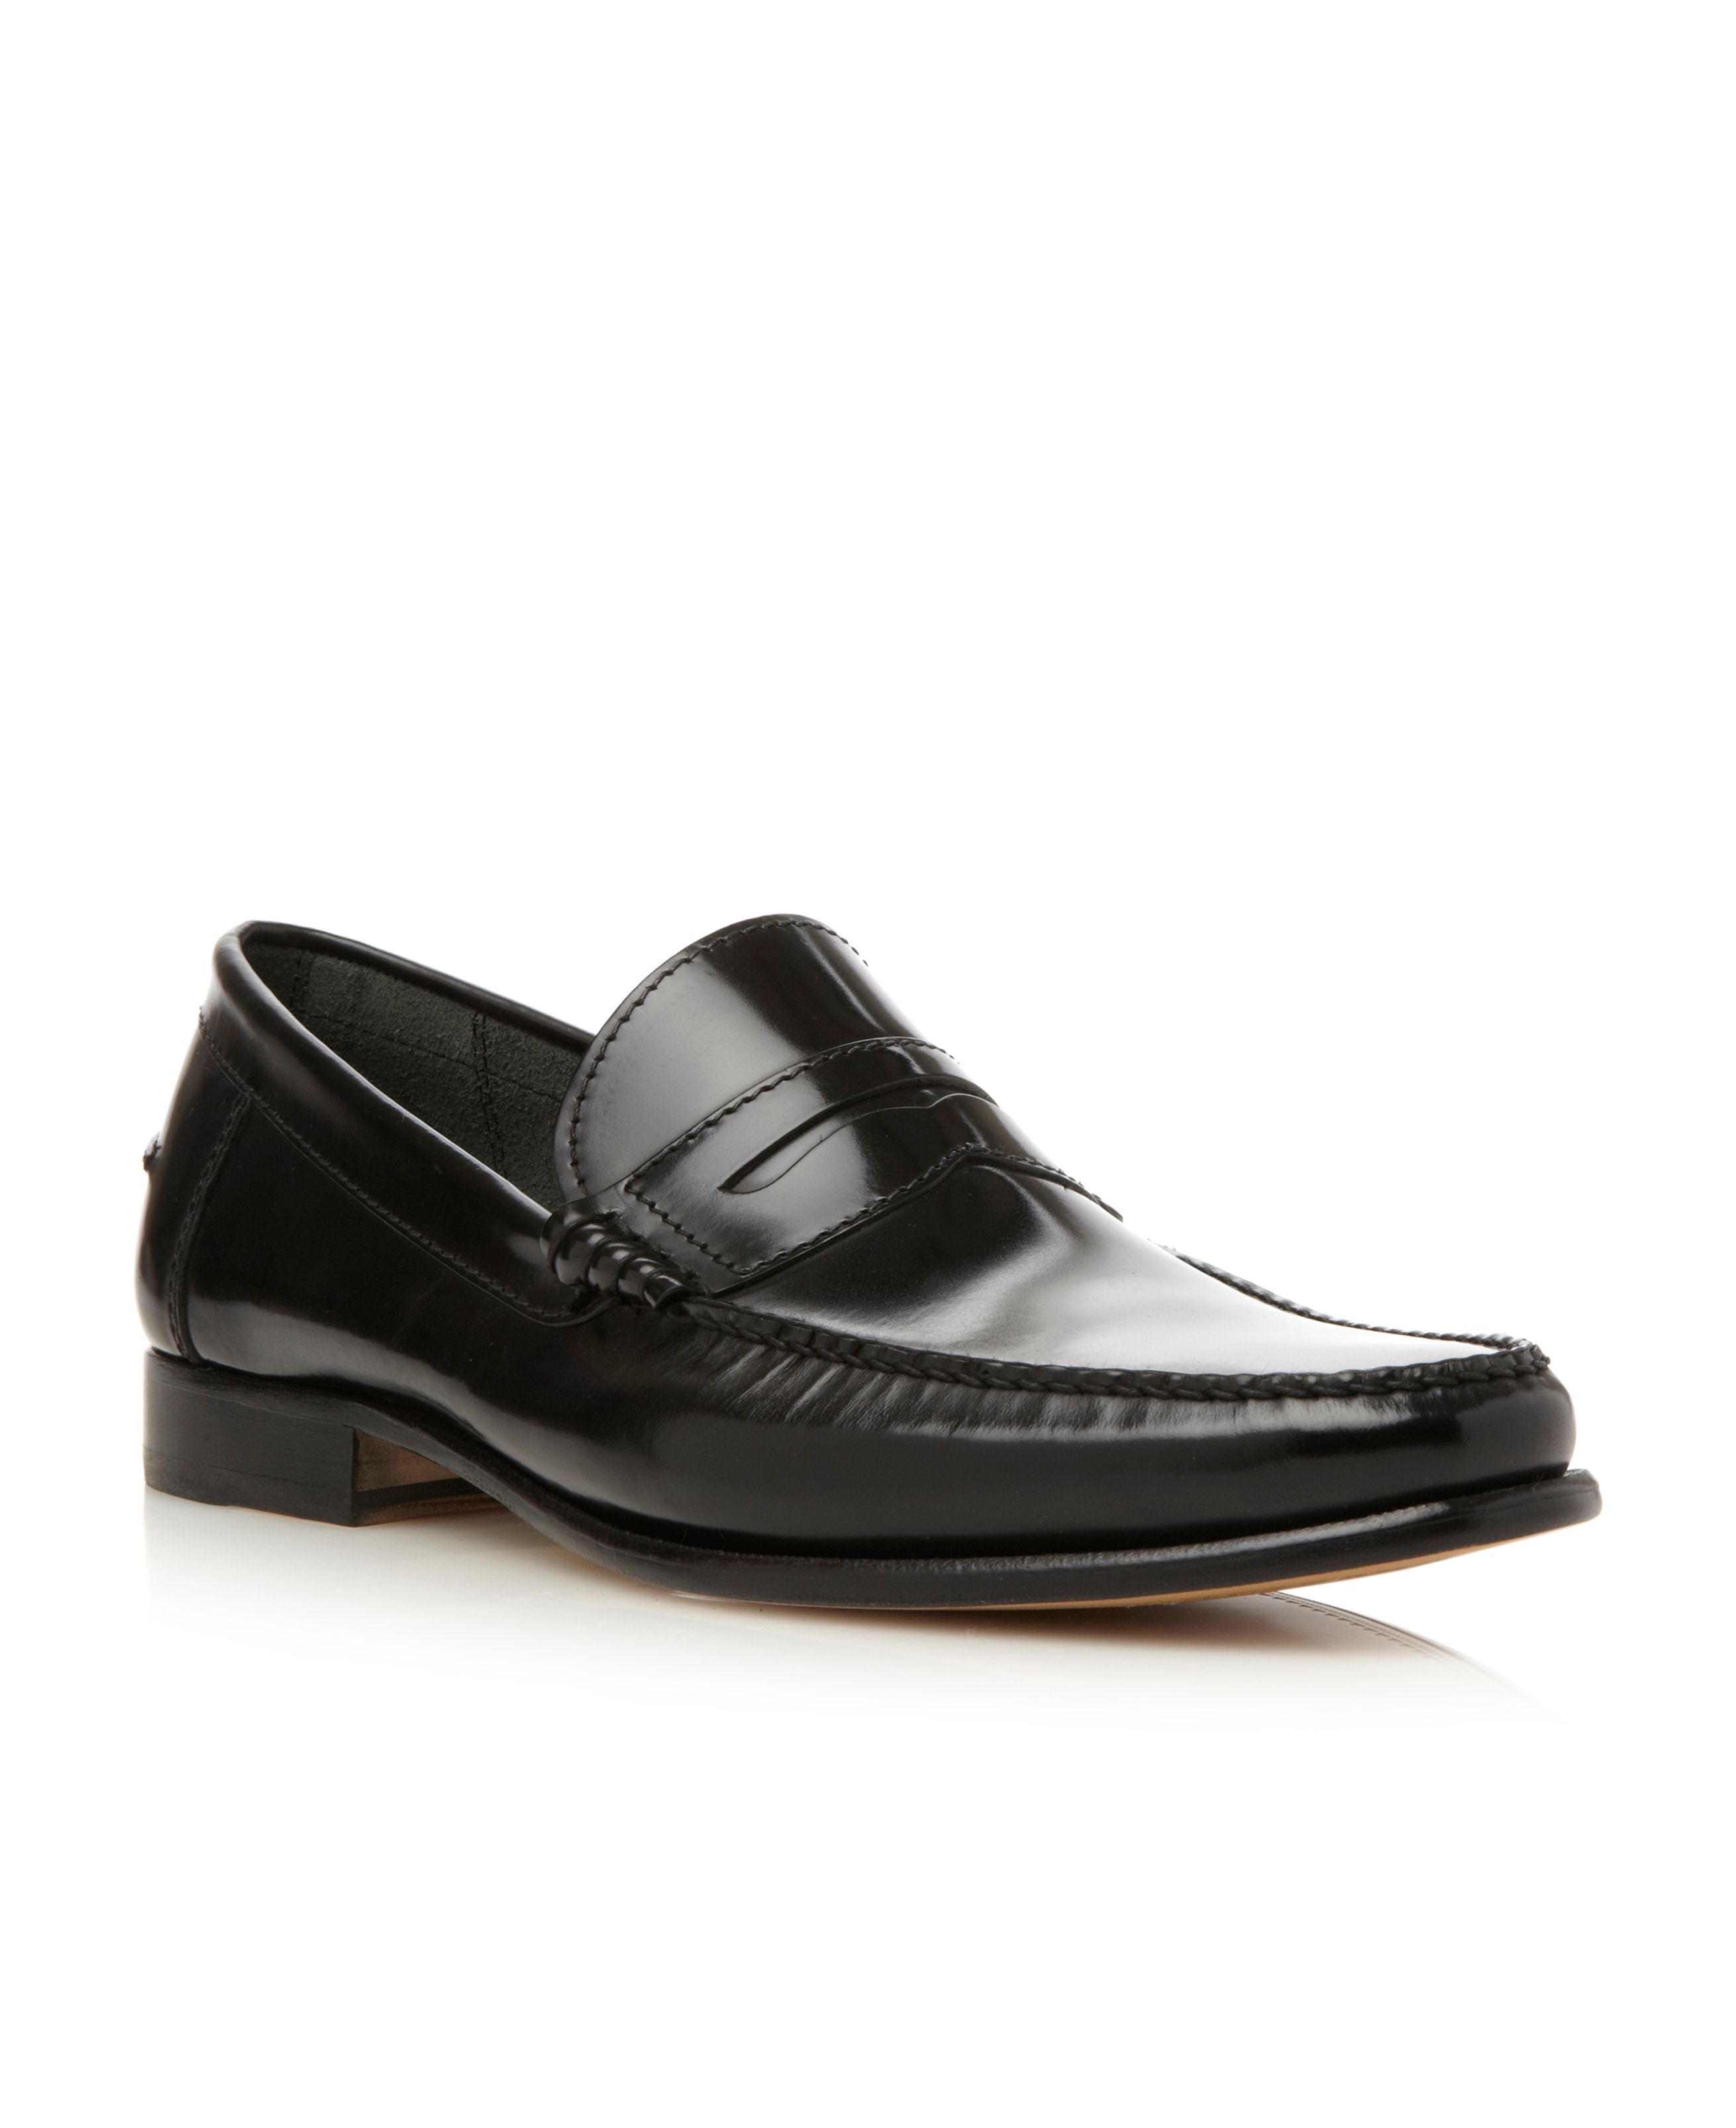 Newington hi shine penny loafers